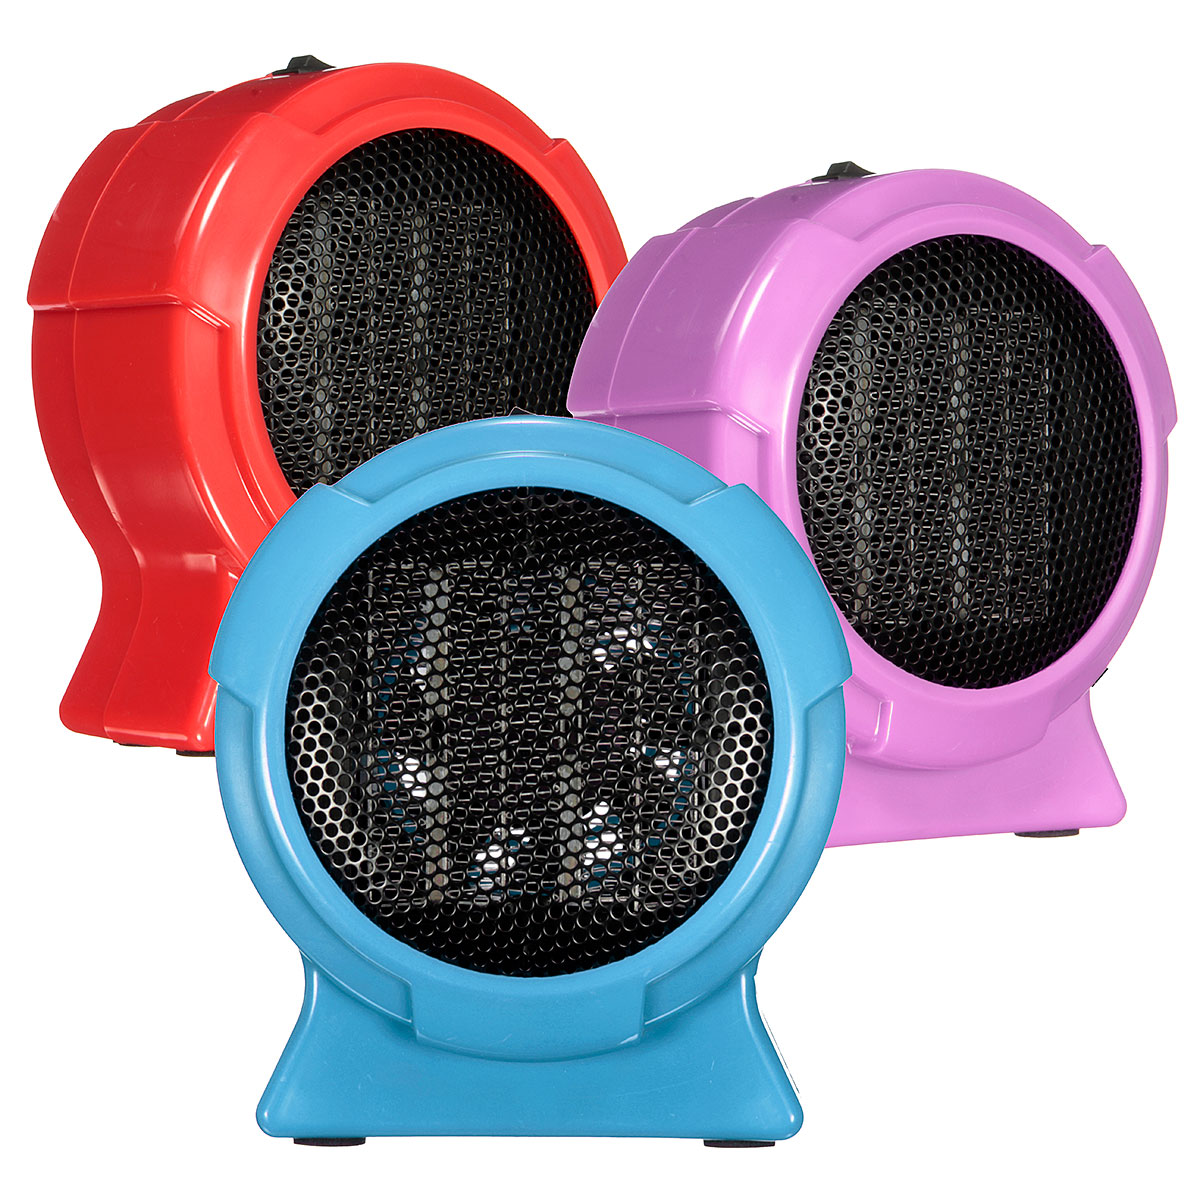 200W Portable Electric Mini Heater Fan Winter Warmer Heating Fan Warmer Home Office Desktop